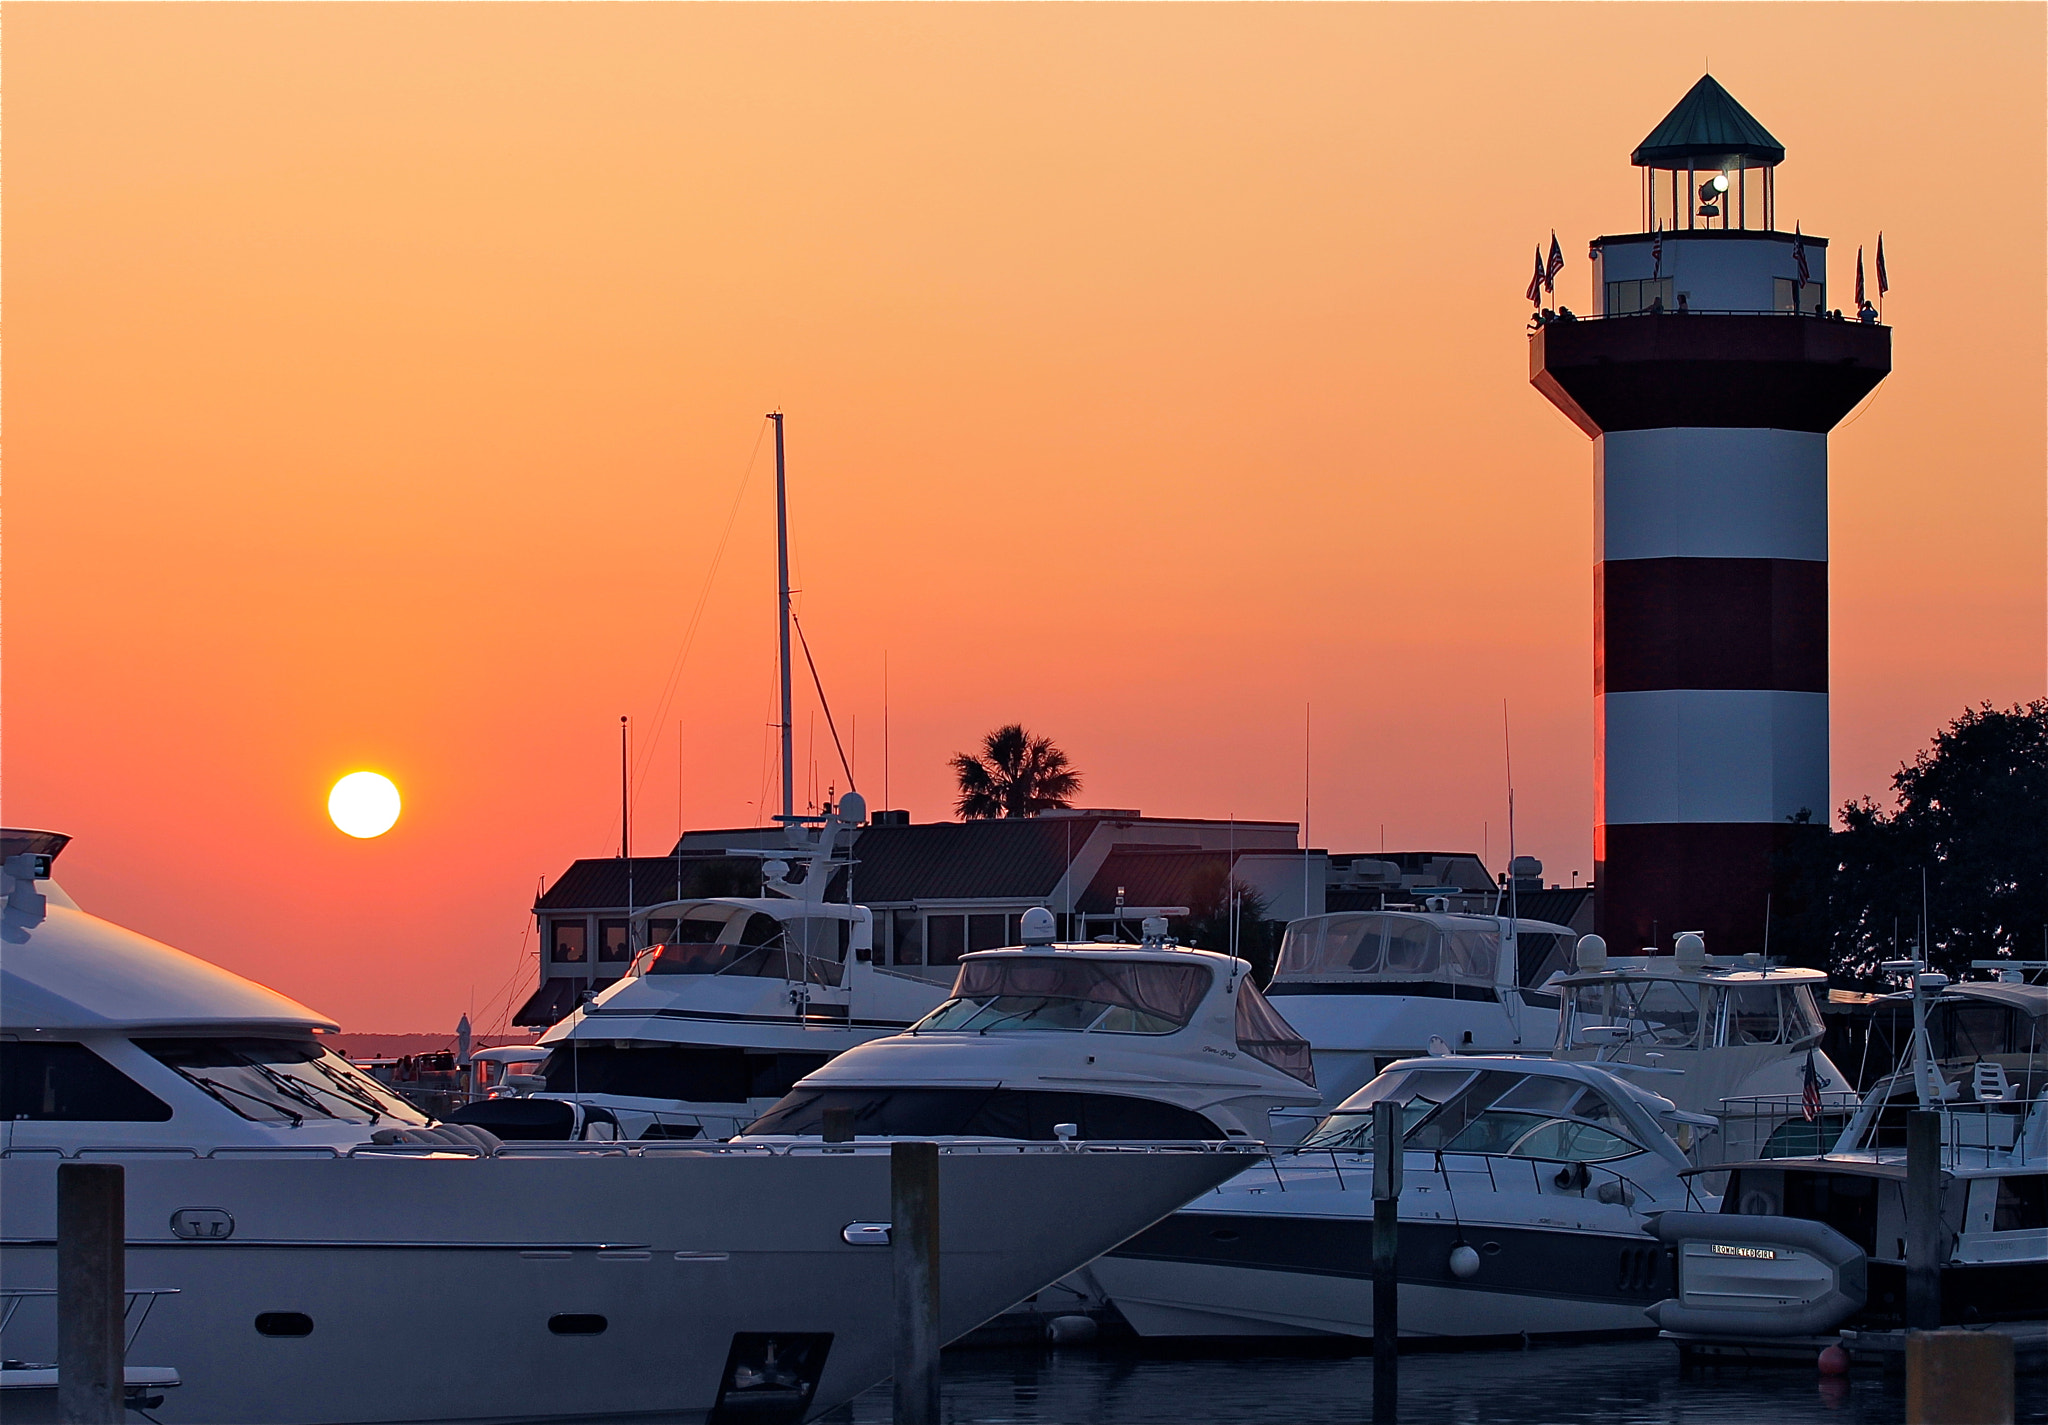 Photograph Harbour Town Sunset, HHI by Eric Lewis on 500px